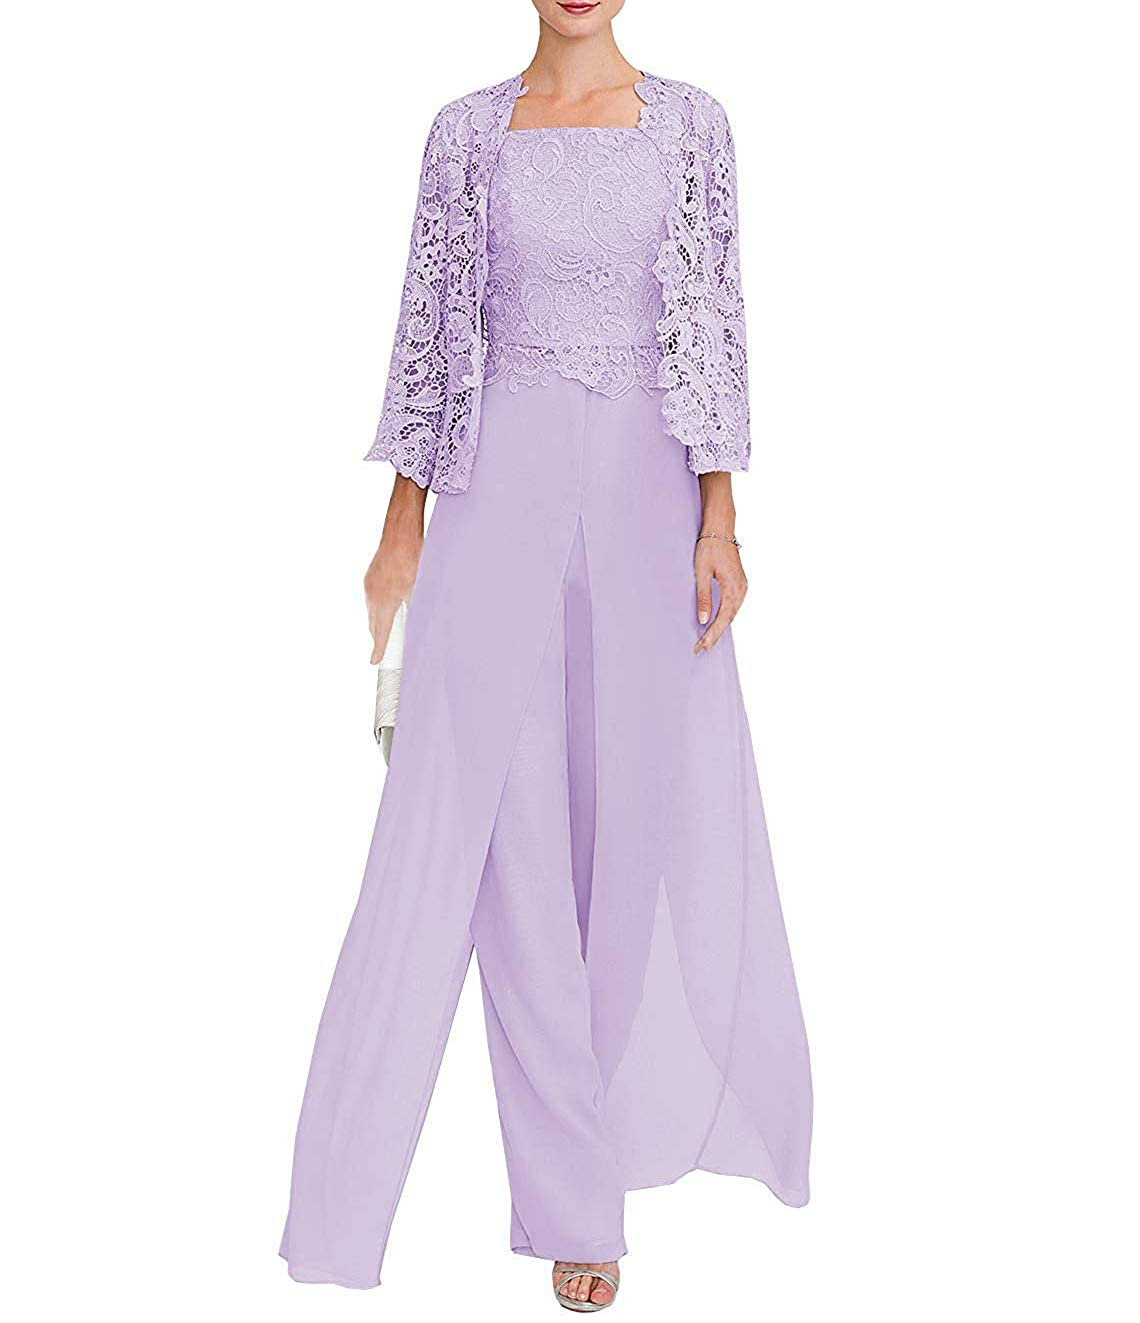 CLOTHSURE Womens Lace Dress 3 Piece Mother of The Bride Pant Suits Long Sleeve with Jacket Evening Cocktail Dresses